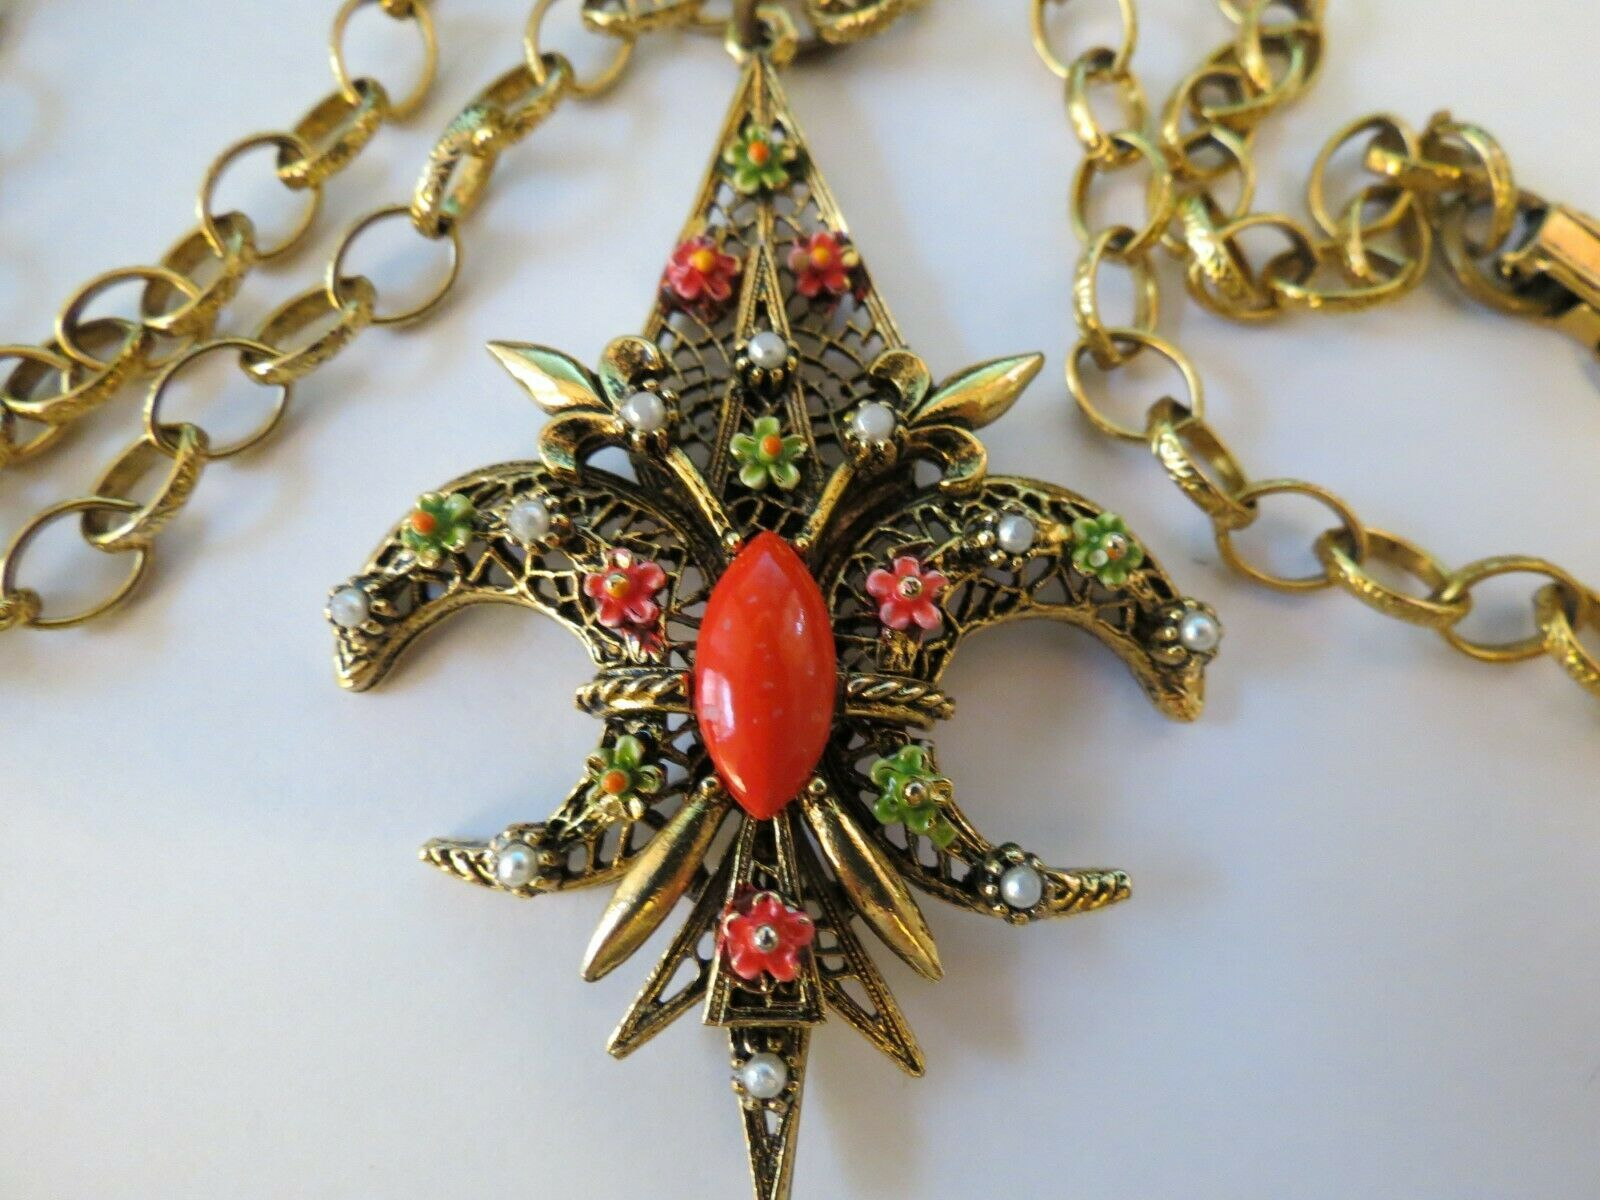 "VTG ART Fluer De Lis Pendant Necklace Enamel Flower Filigree Open Work 30"" Chain"